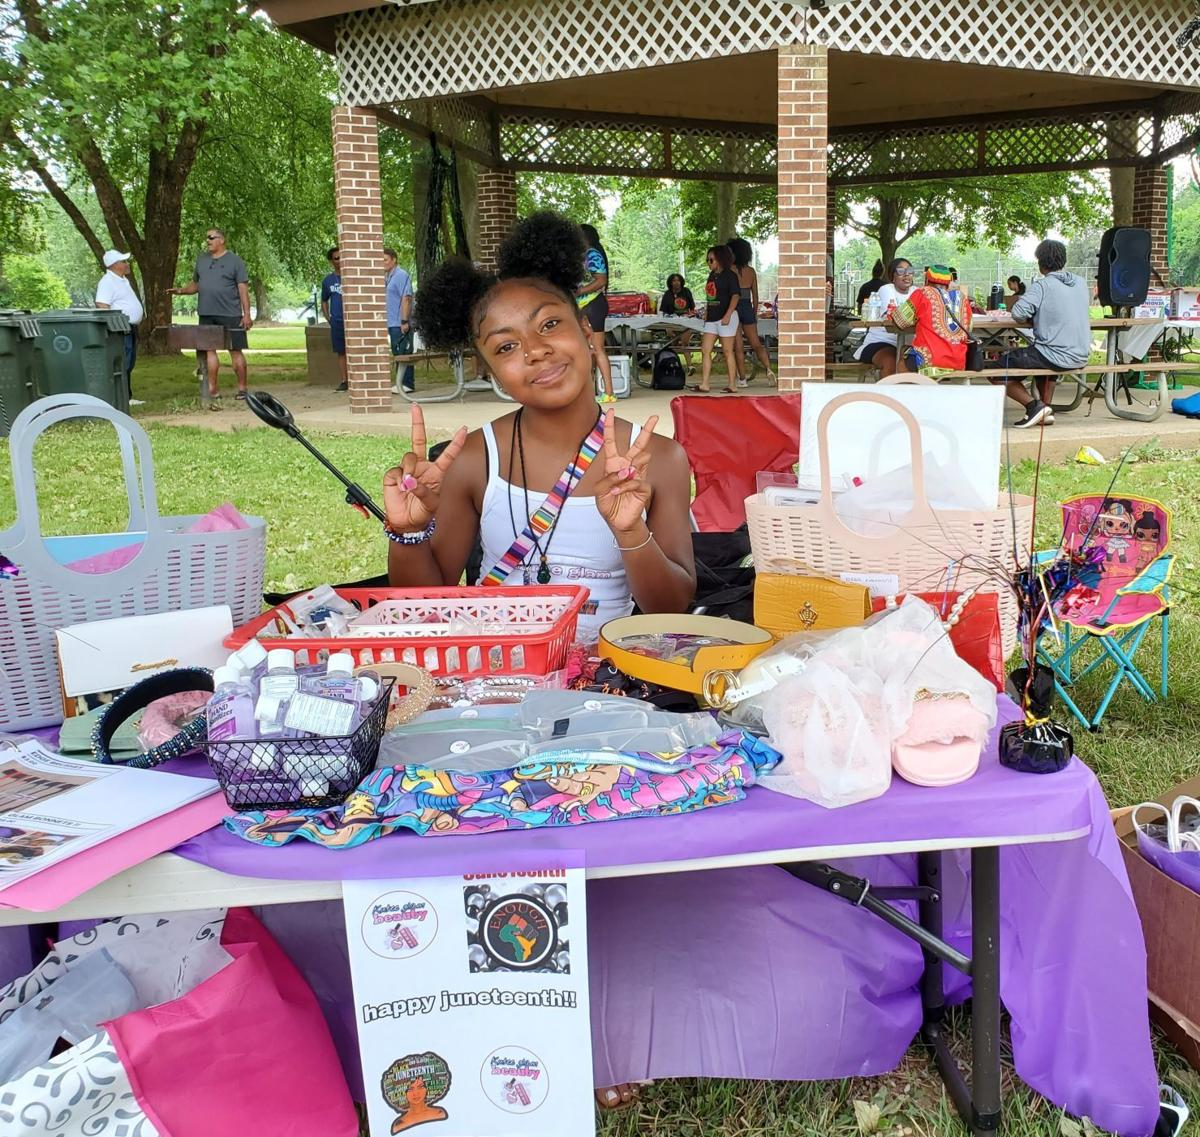 Culpeper gathers for Juneteenth